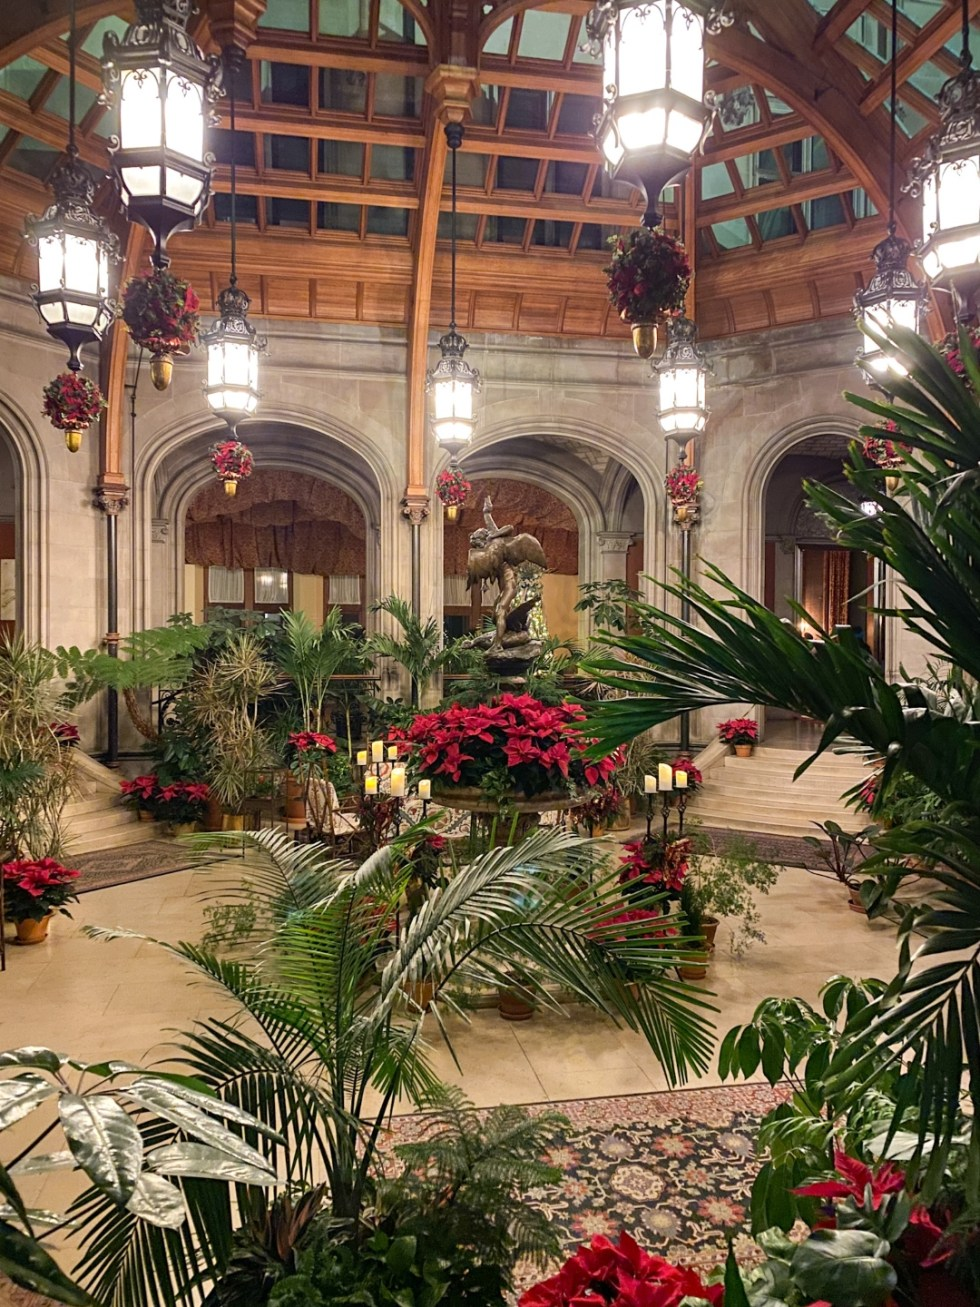 Christmas in Asheville NC by popular NC lifestyle blog, I'm Fixin' To: image of green plats and poinsettia plants inside the Biltmore House.